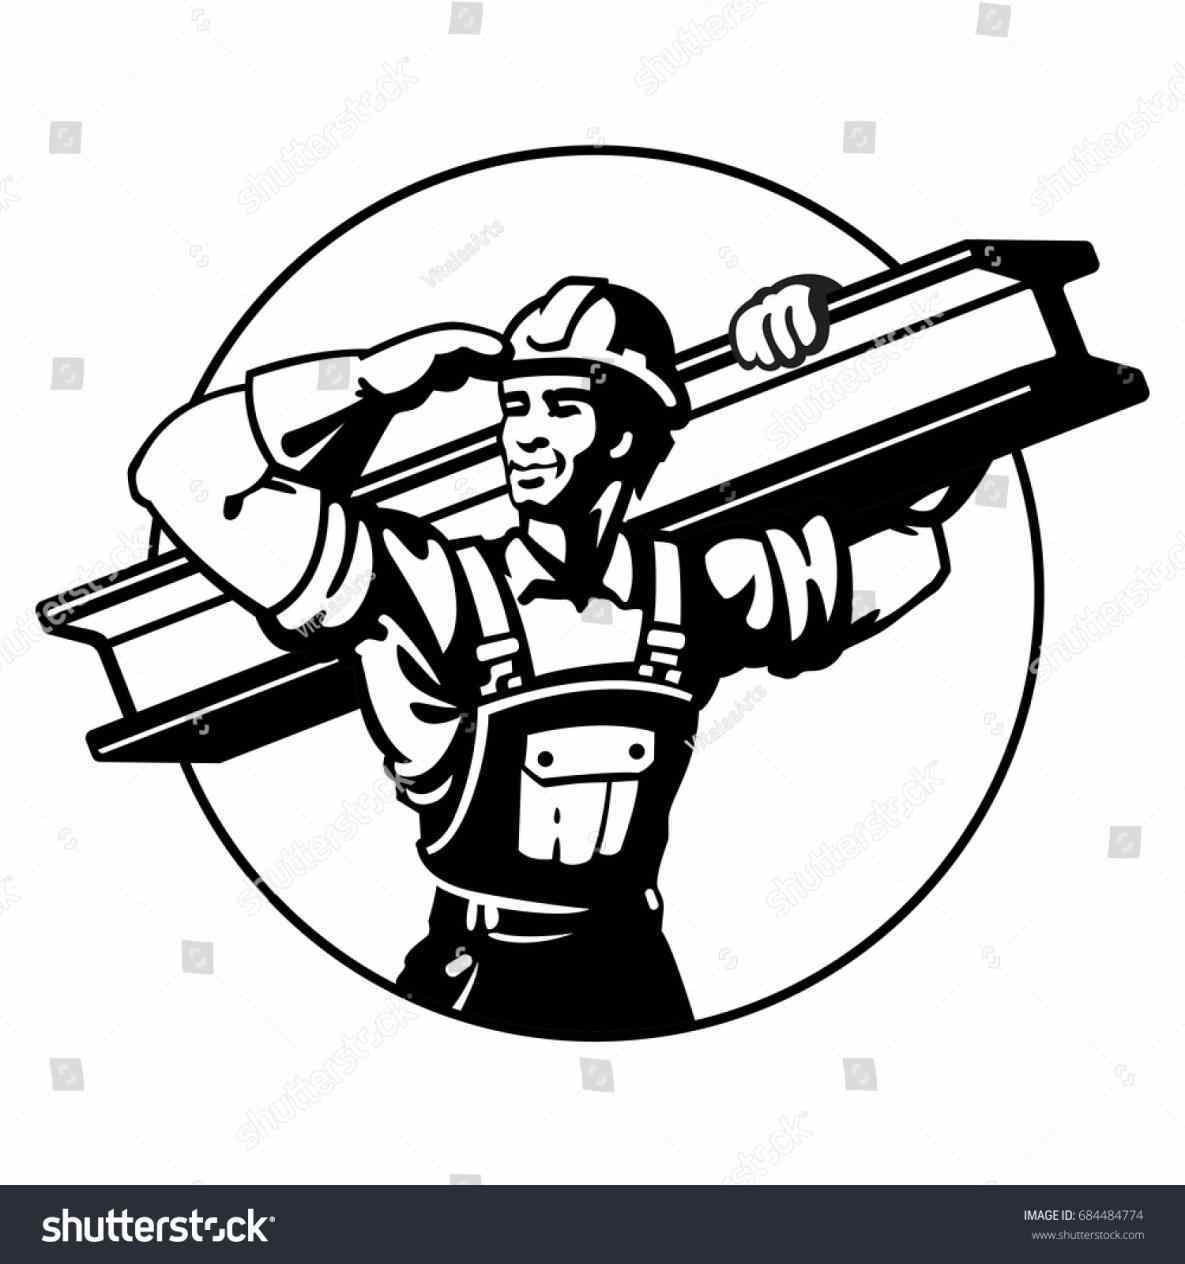 3959 Construction free clipart.